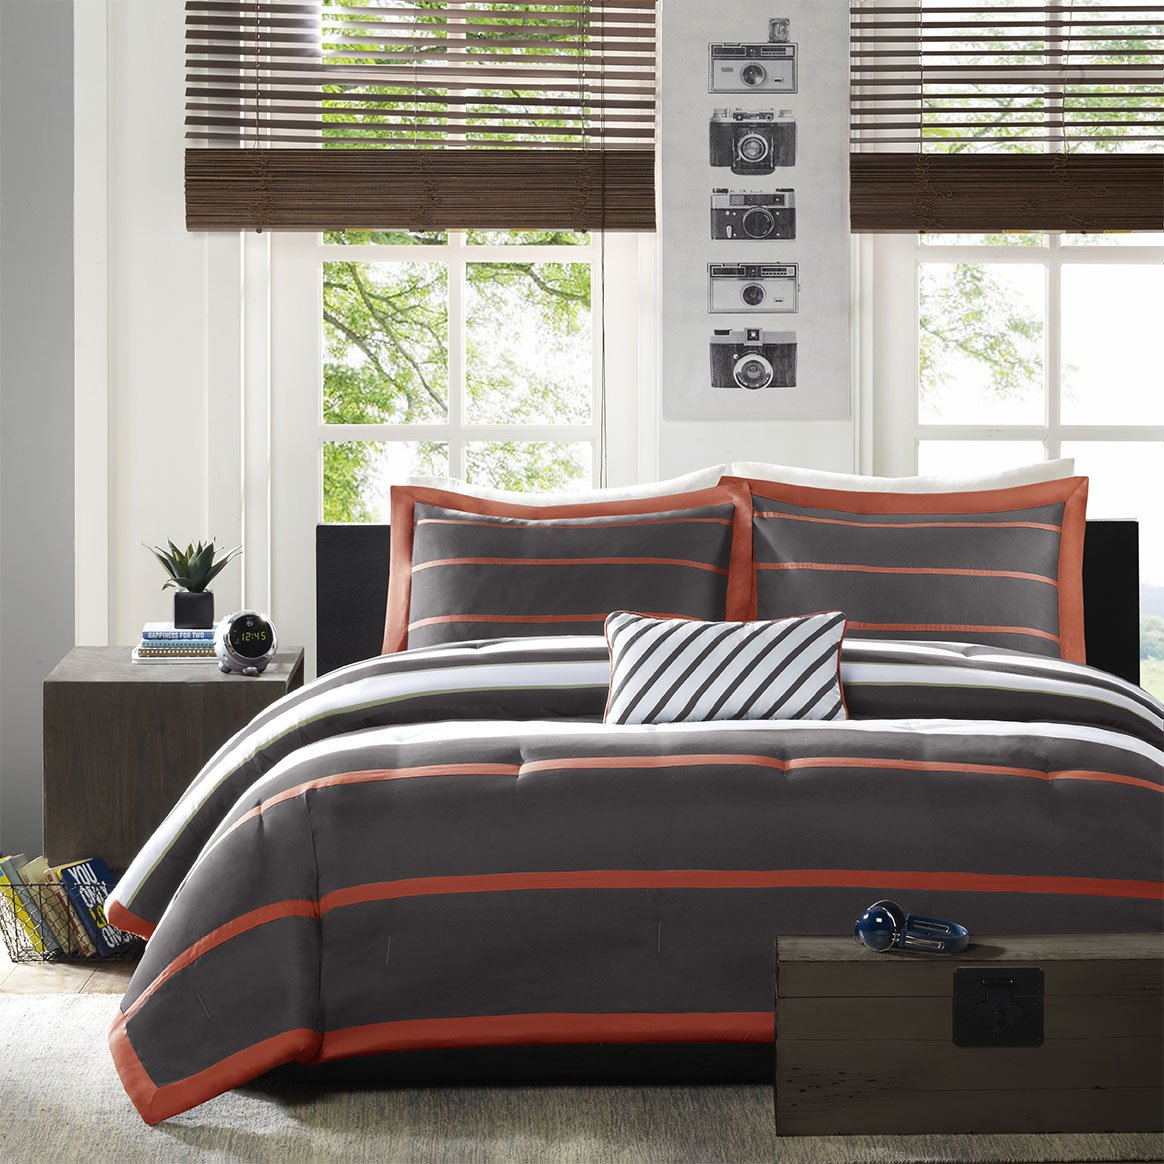 best house orange fab to grey and bedding total comforter applied within your sets queen idea tips